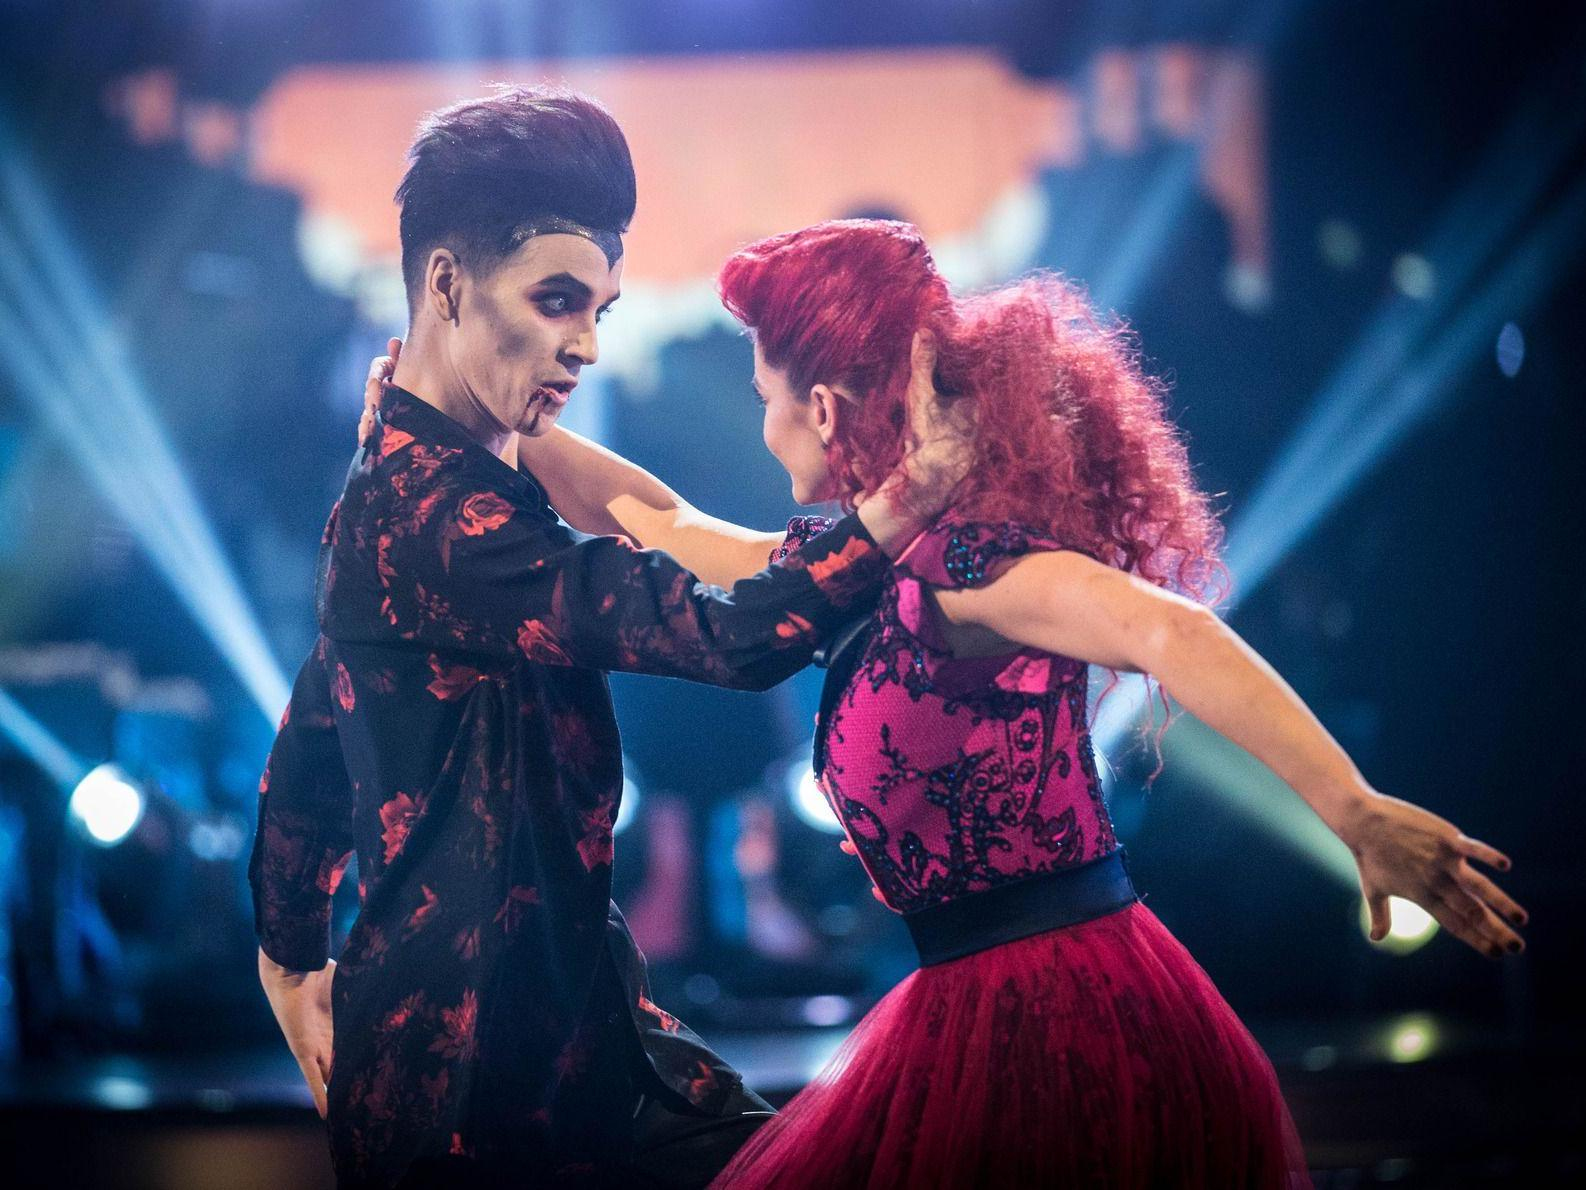 Strictly Come Dancing: BBC announces dance list and song choices for Halloween week